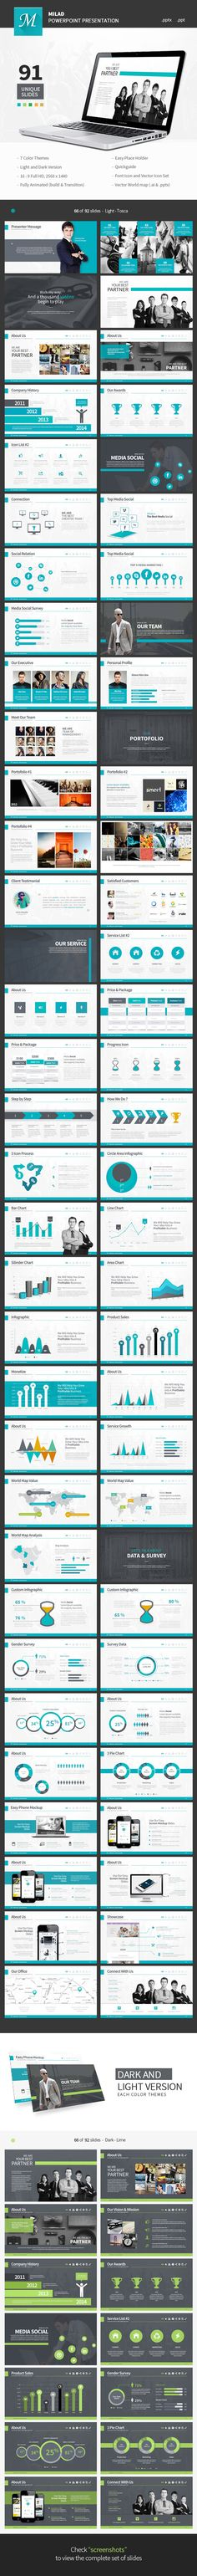 Buy Pitch Deck NY PowerPoint Presentation Template by SanaNik on GraphicRiver. Keynote Version is Available Create your amazing pitch deck and wow your investors with clean and professional templ. Powerpoint Design, Creative Powerpoint Templates, Powerpoint Presentation Templates, Keynote Template, Powerpoint Presentations, Design Presentation, Corporate Presentation, Presentation Slides, Web Design